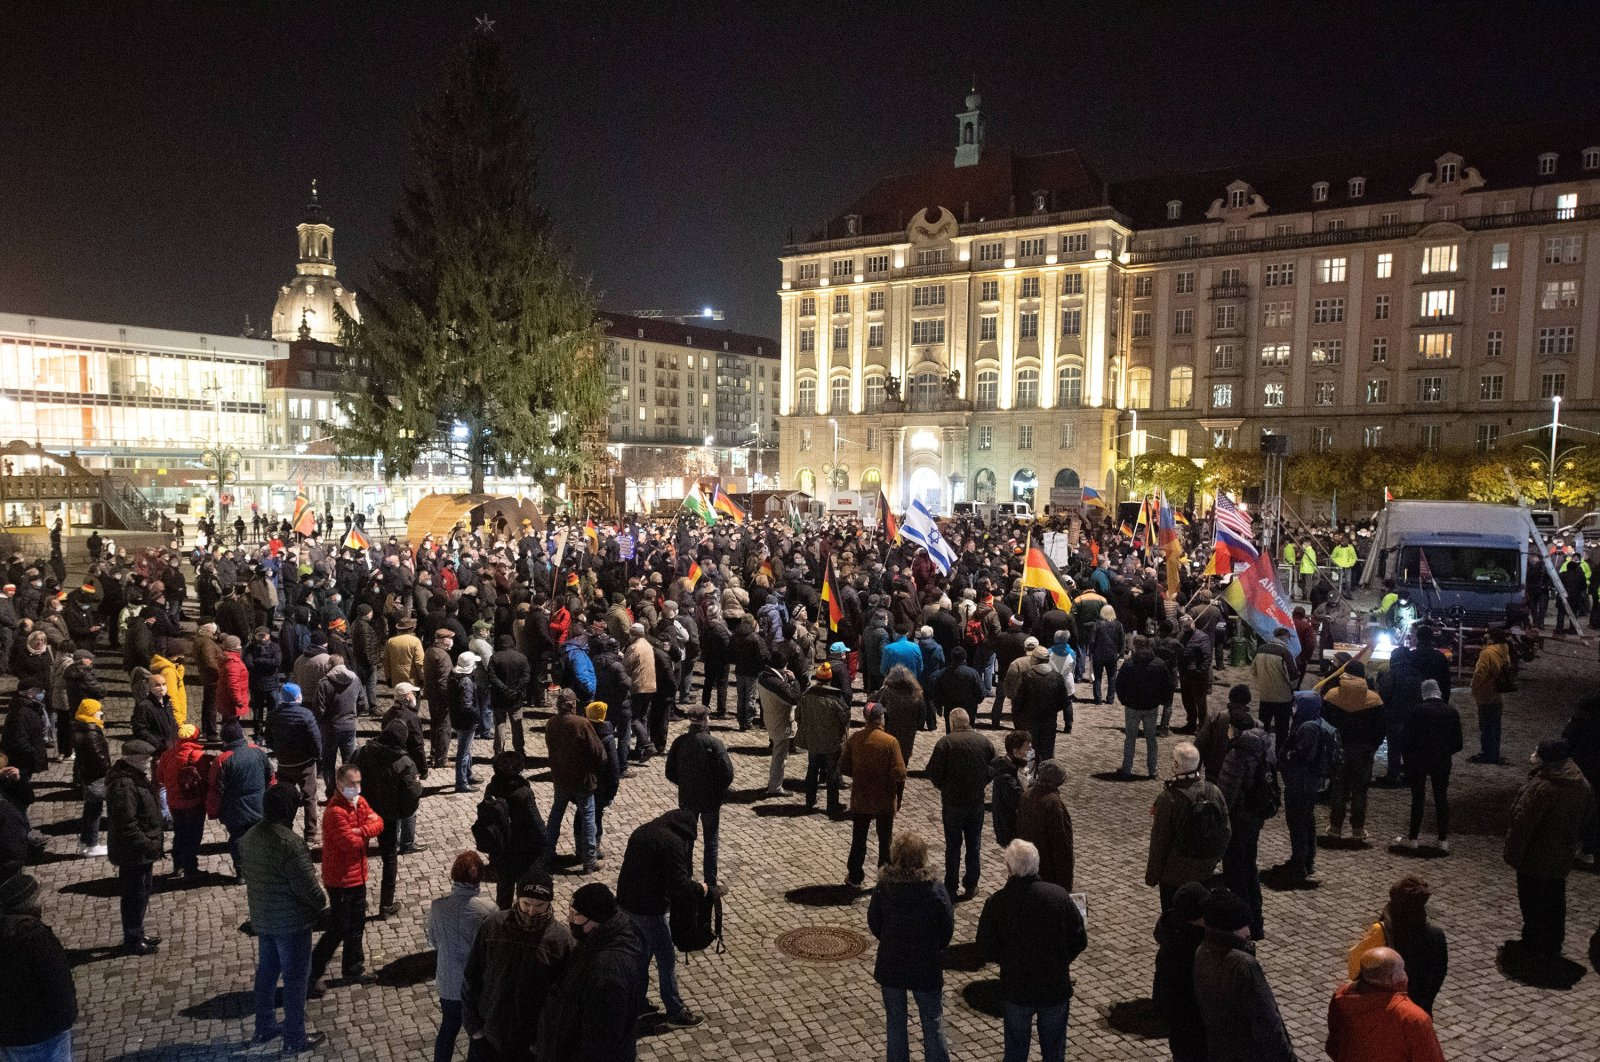 Participants stand in front of the Frauenkirche during a rally of the Islamophobic and xenophobic Pegida movement on the Altmarkt in front of the Frauenkirche, Nov. 9, 2020. (Getty Images)